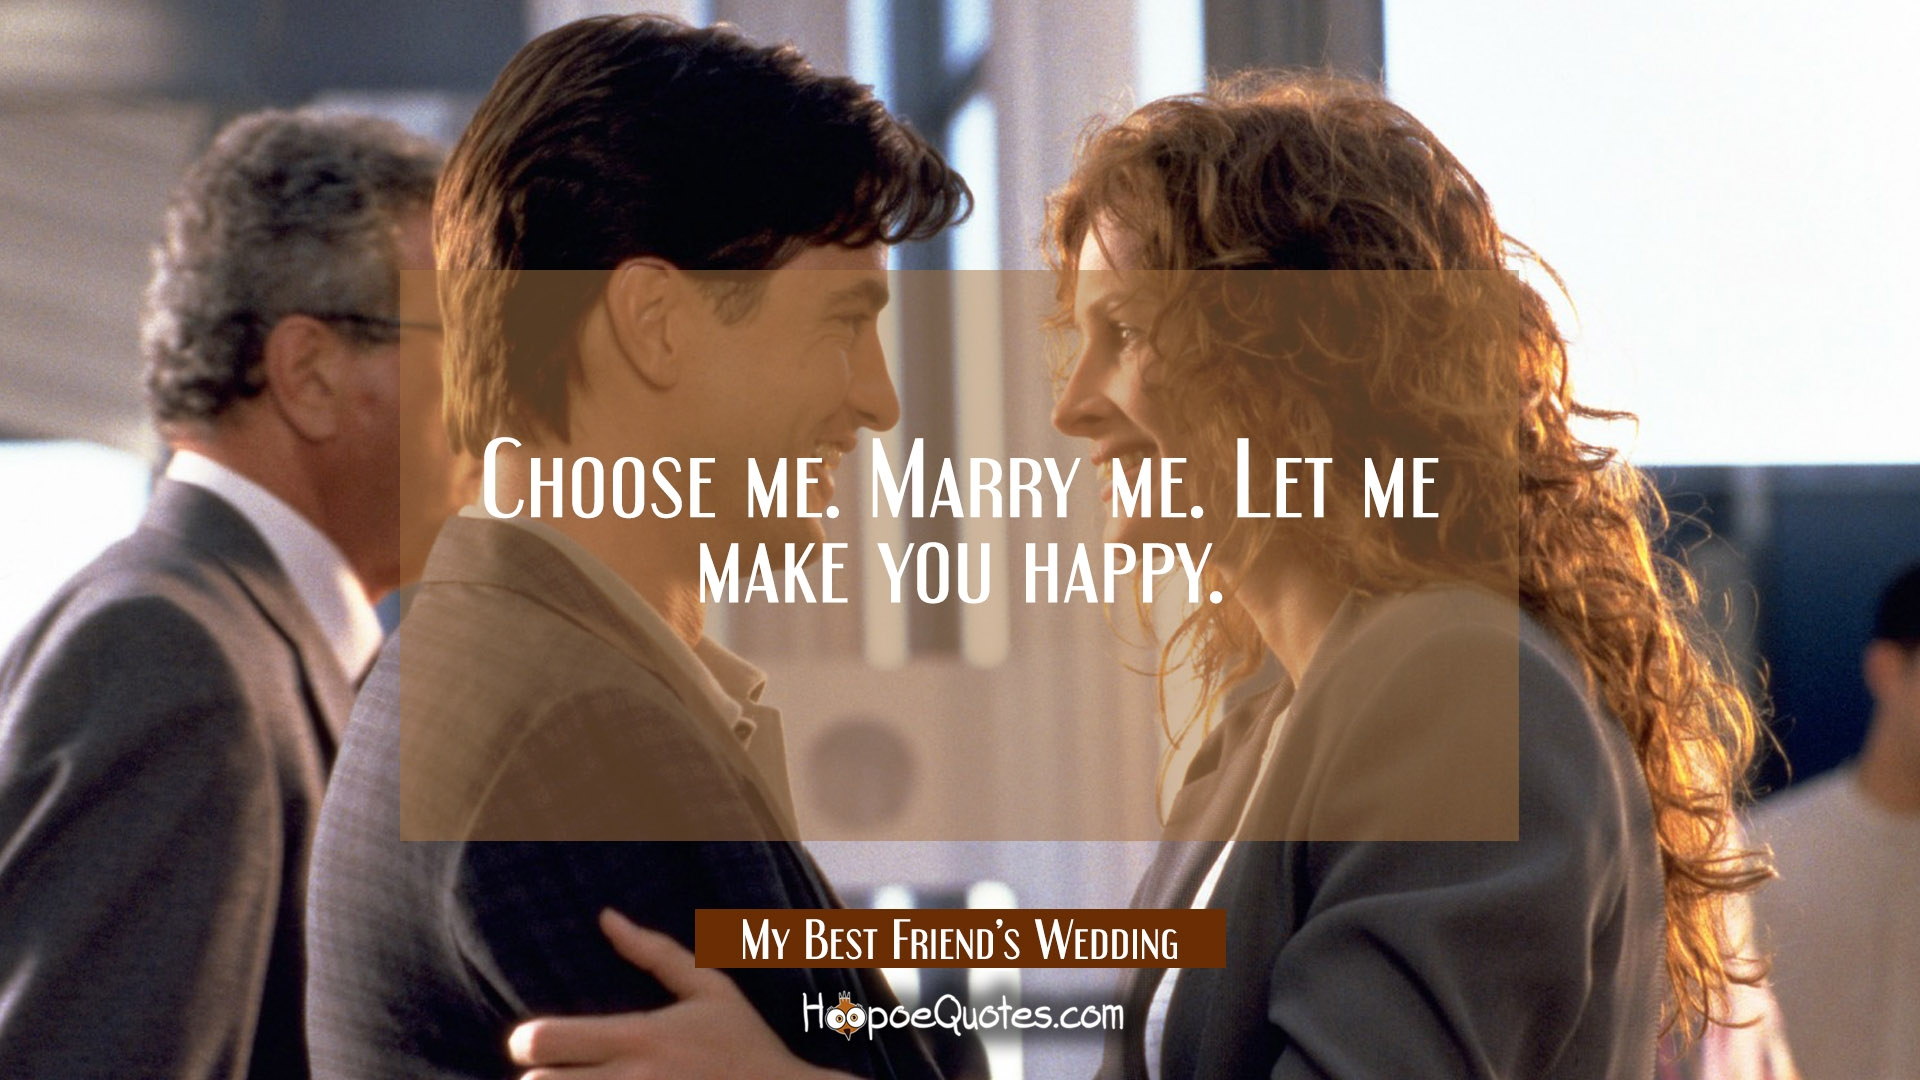 Choose me. Marry me. Let me make you happy. - HoopoeQuotes